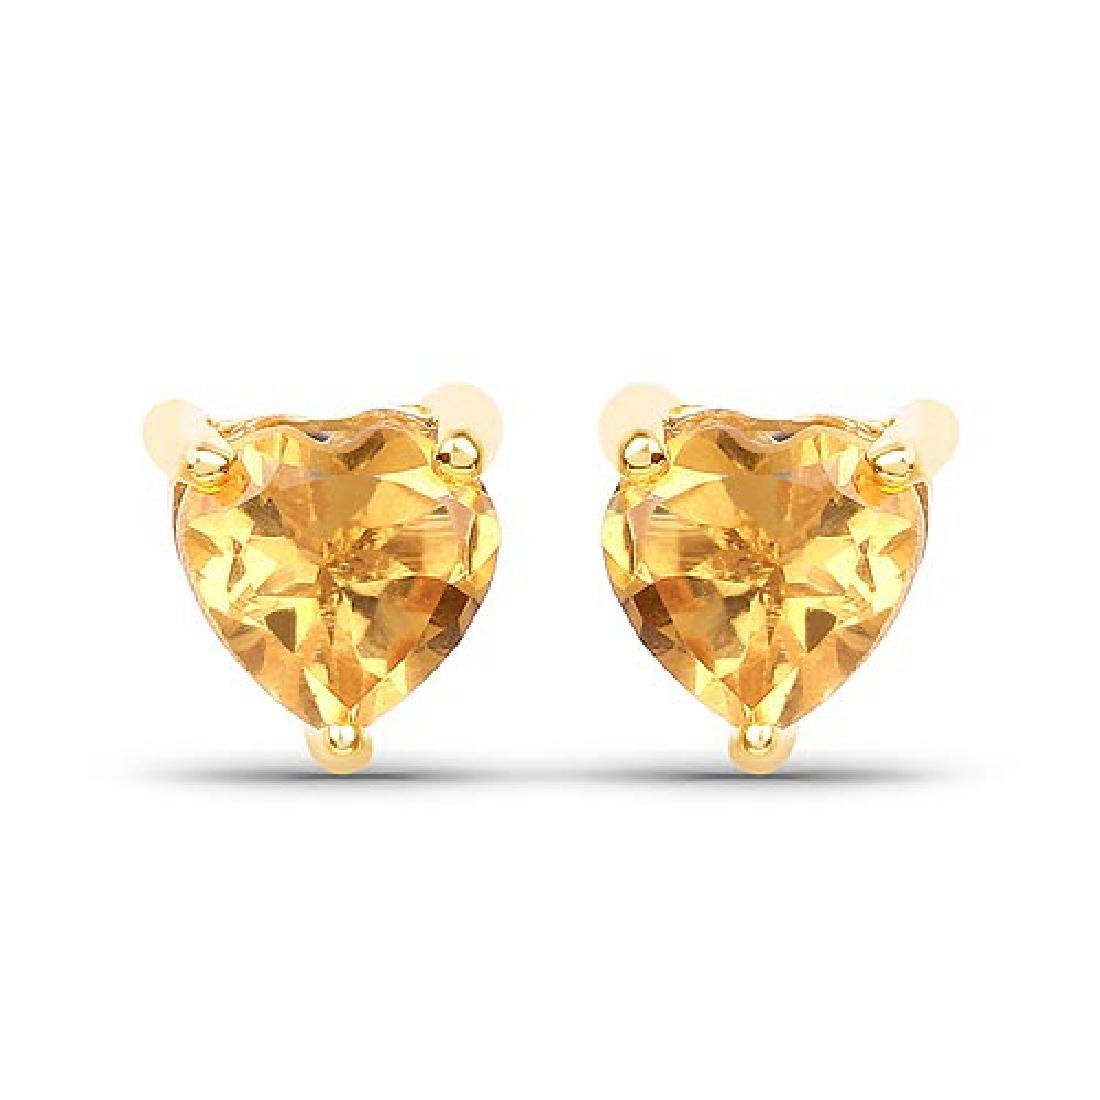 0.50 Carat Genuine Citrine 10K Yellow Gold Earrings